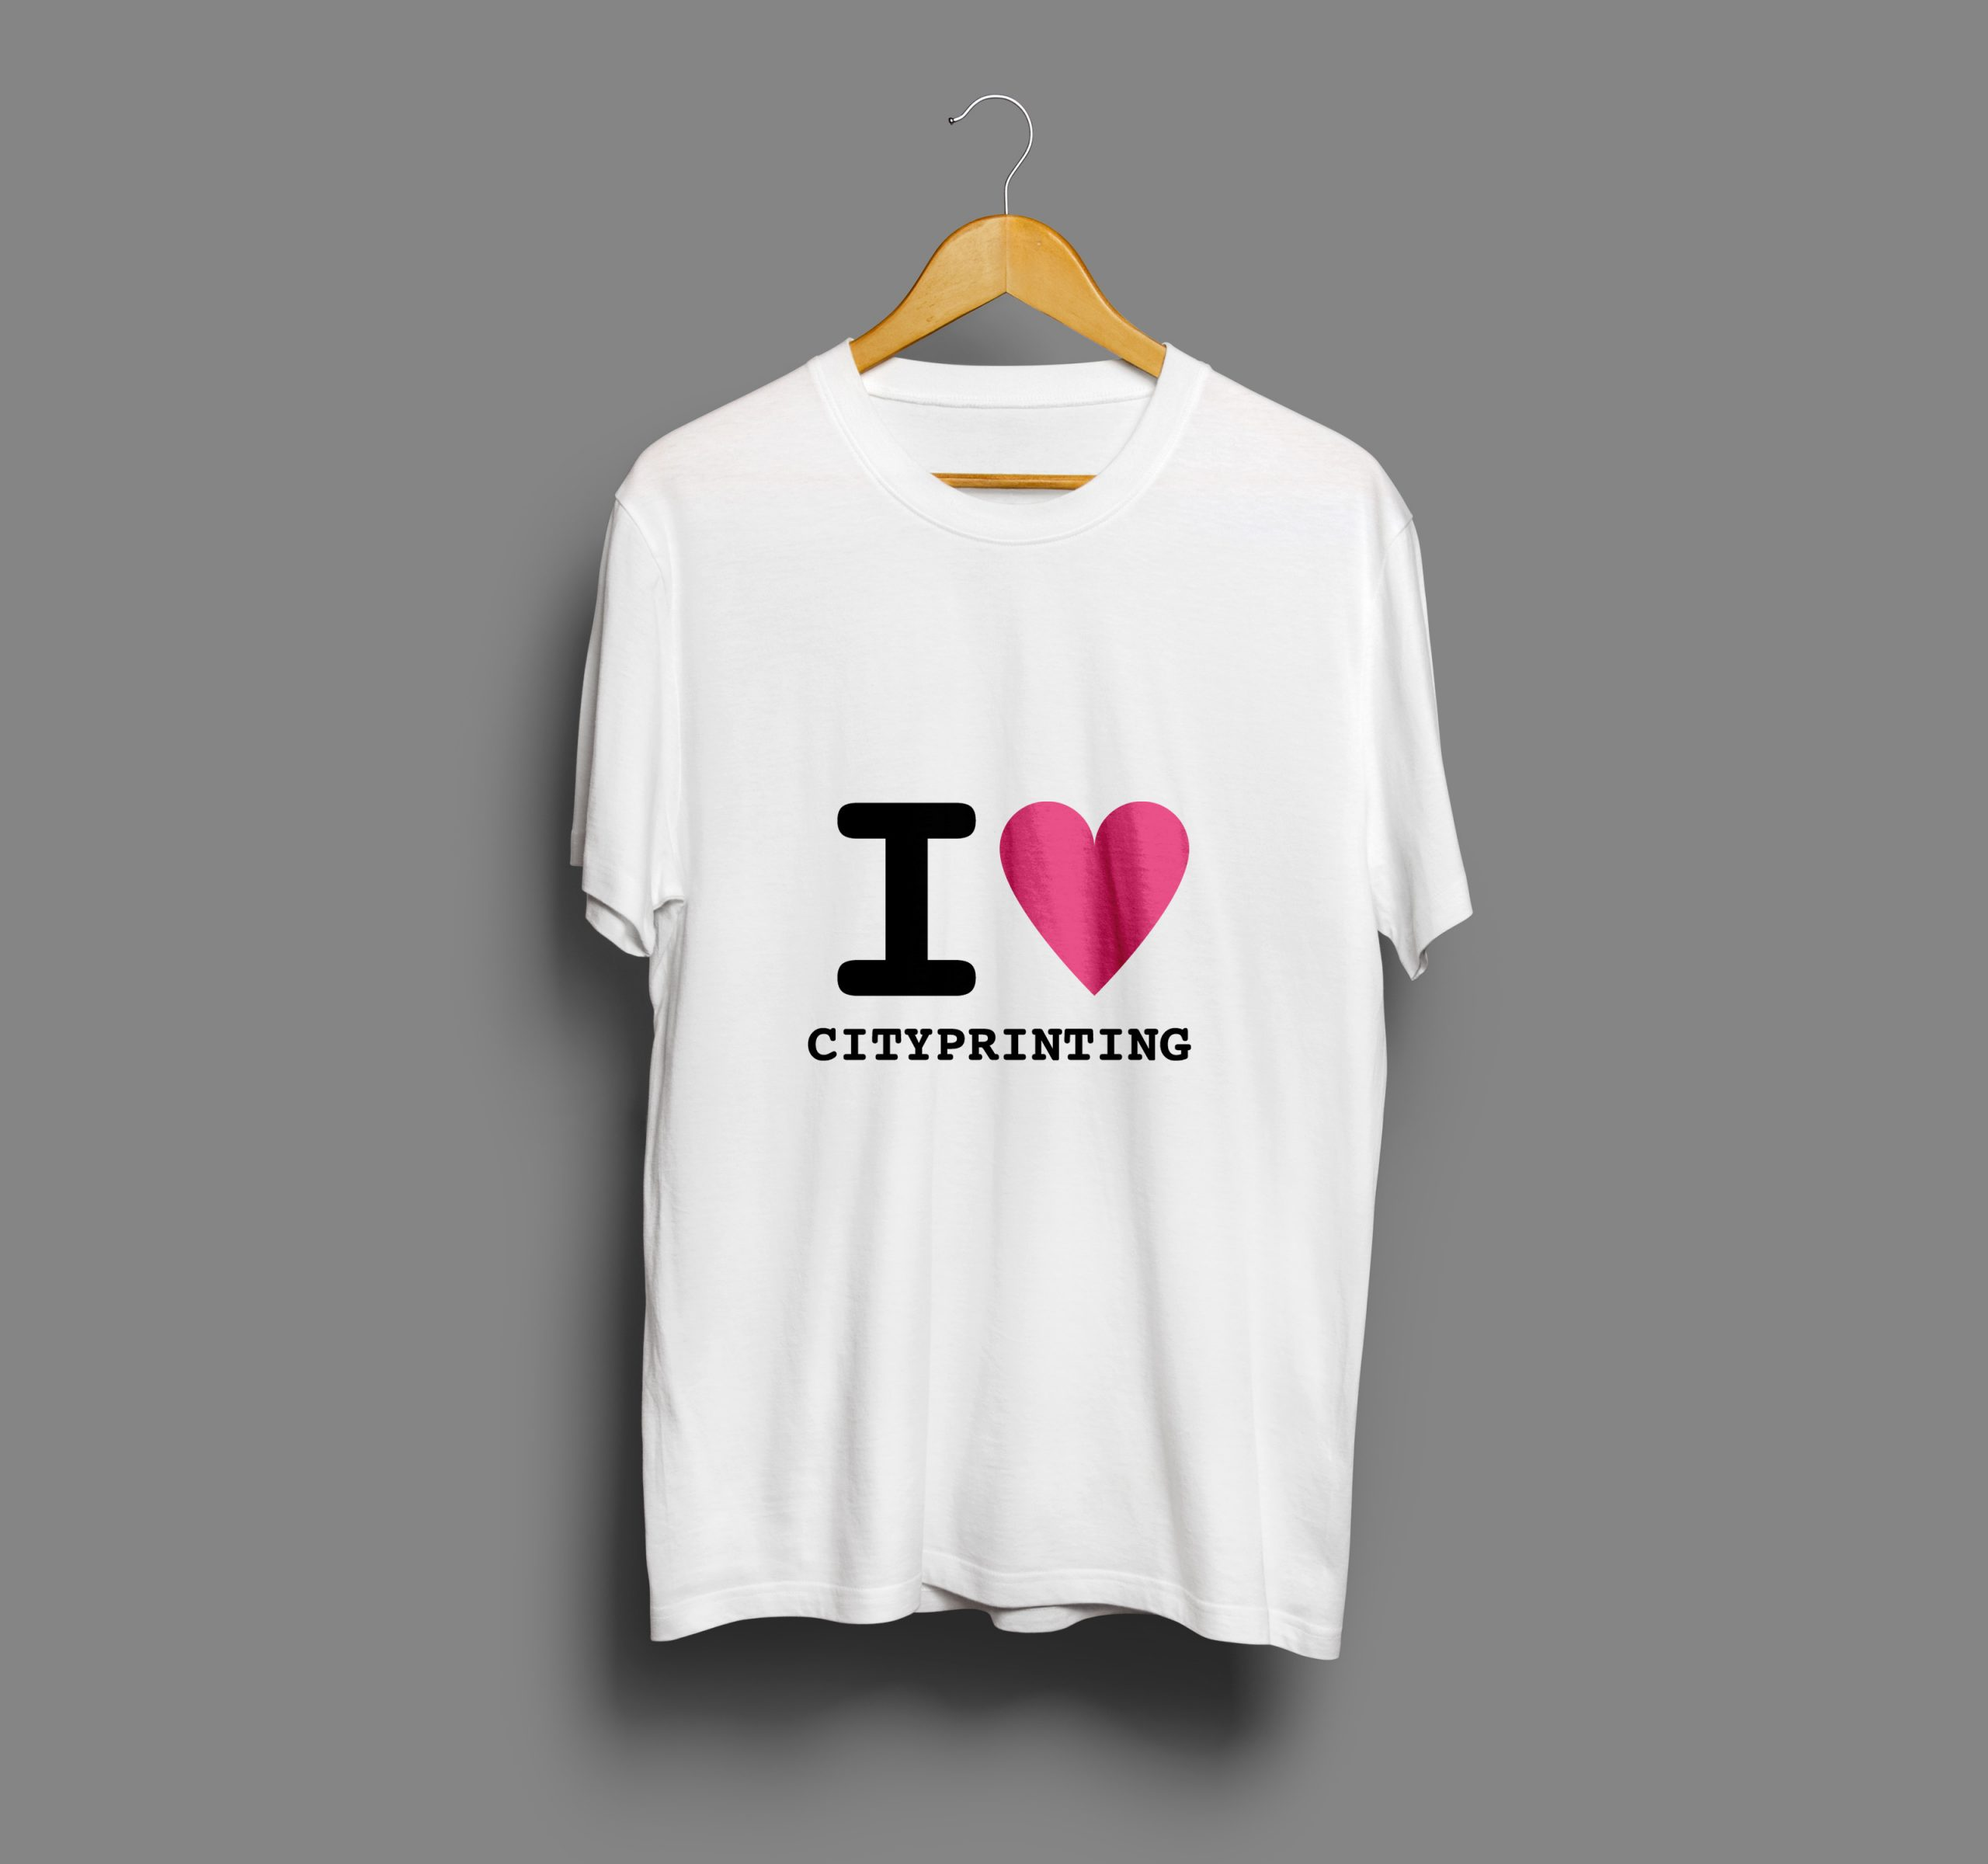 T-Shirt Printing- Online Business for Current Generation